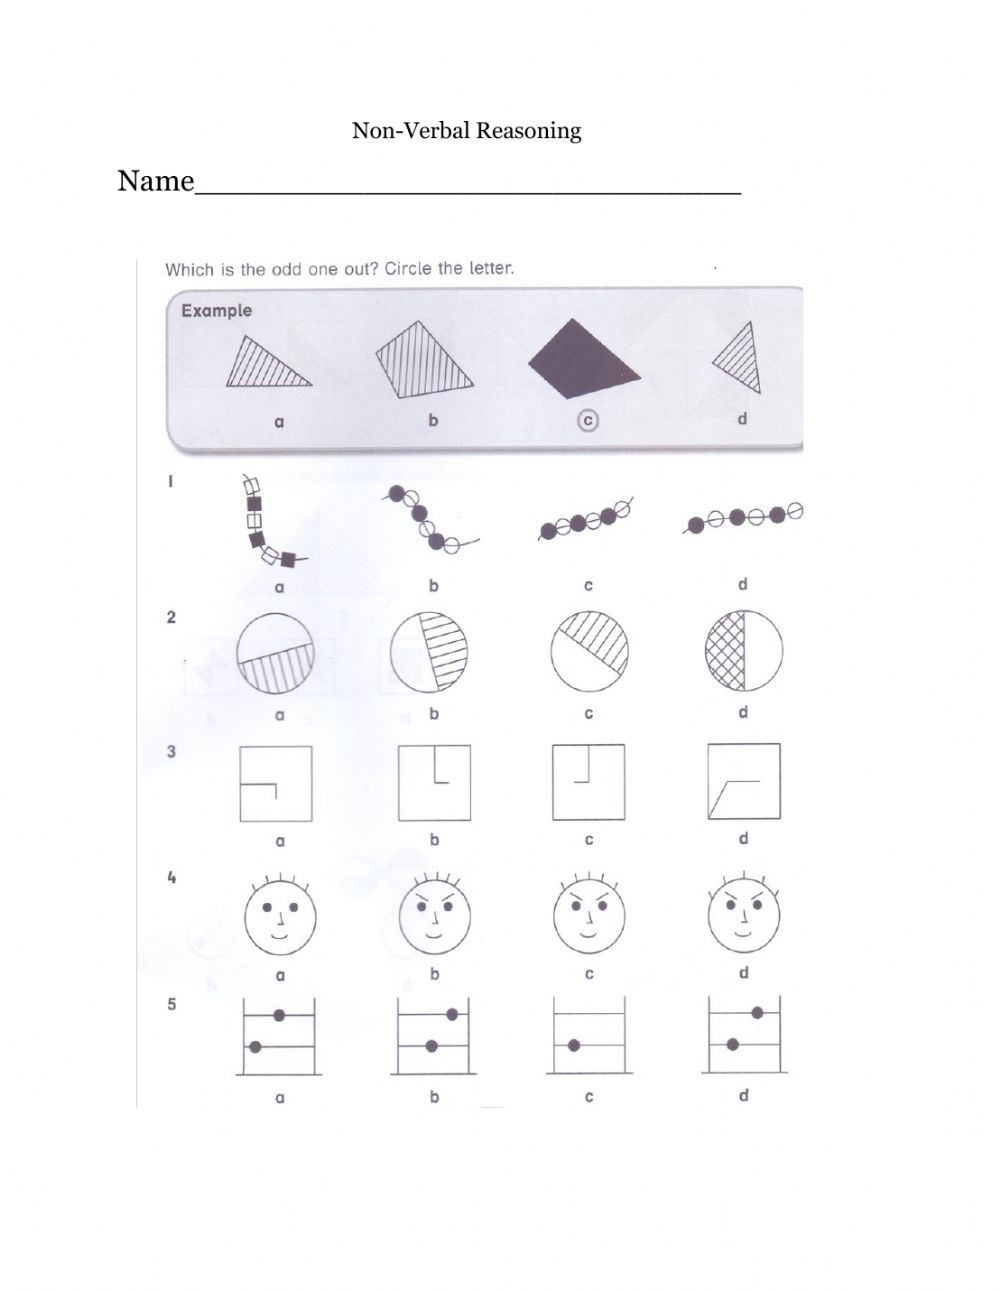 Reasoning Worksheets for Grade 1 Non Verbal Reasoning Interactive Worksheet